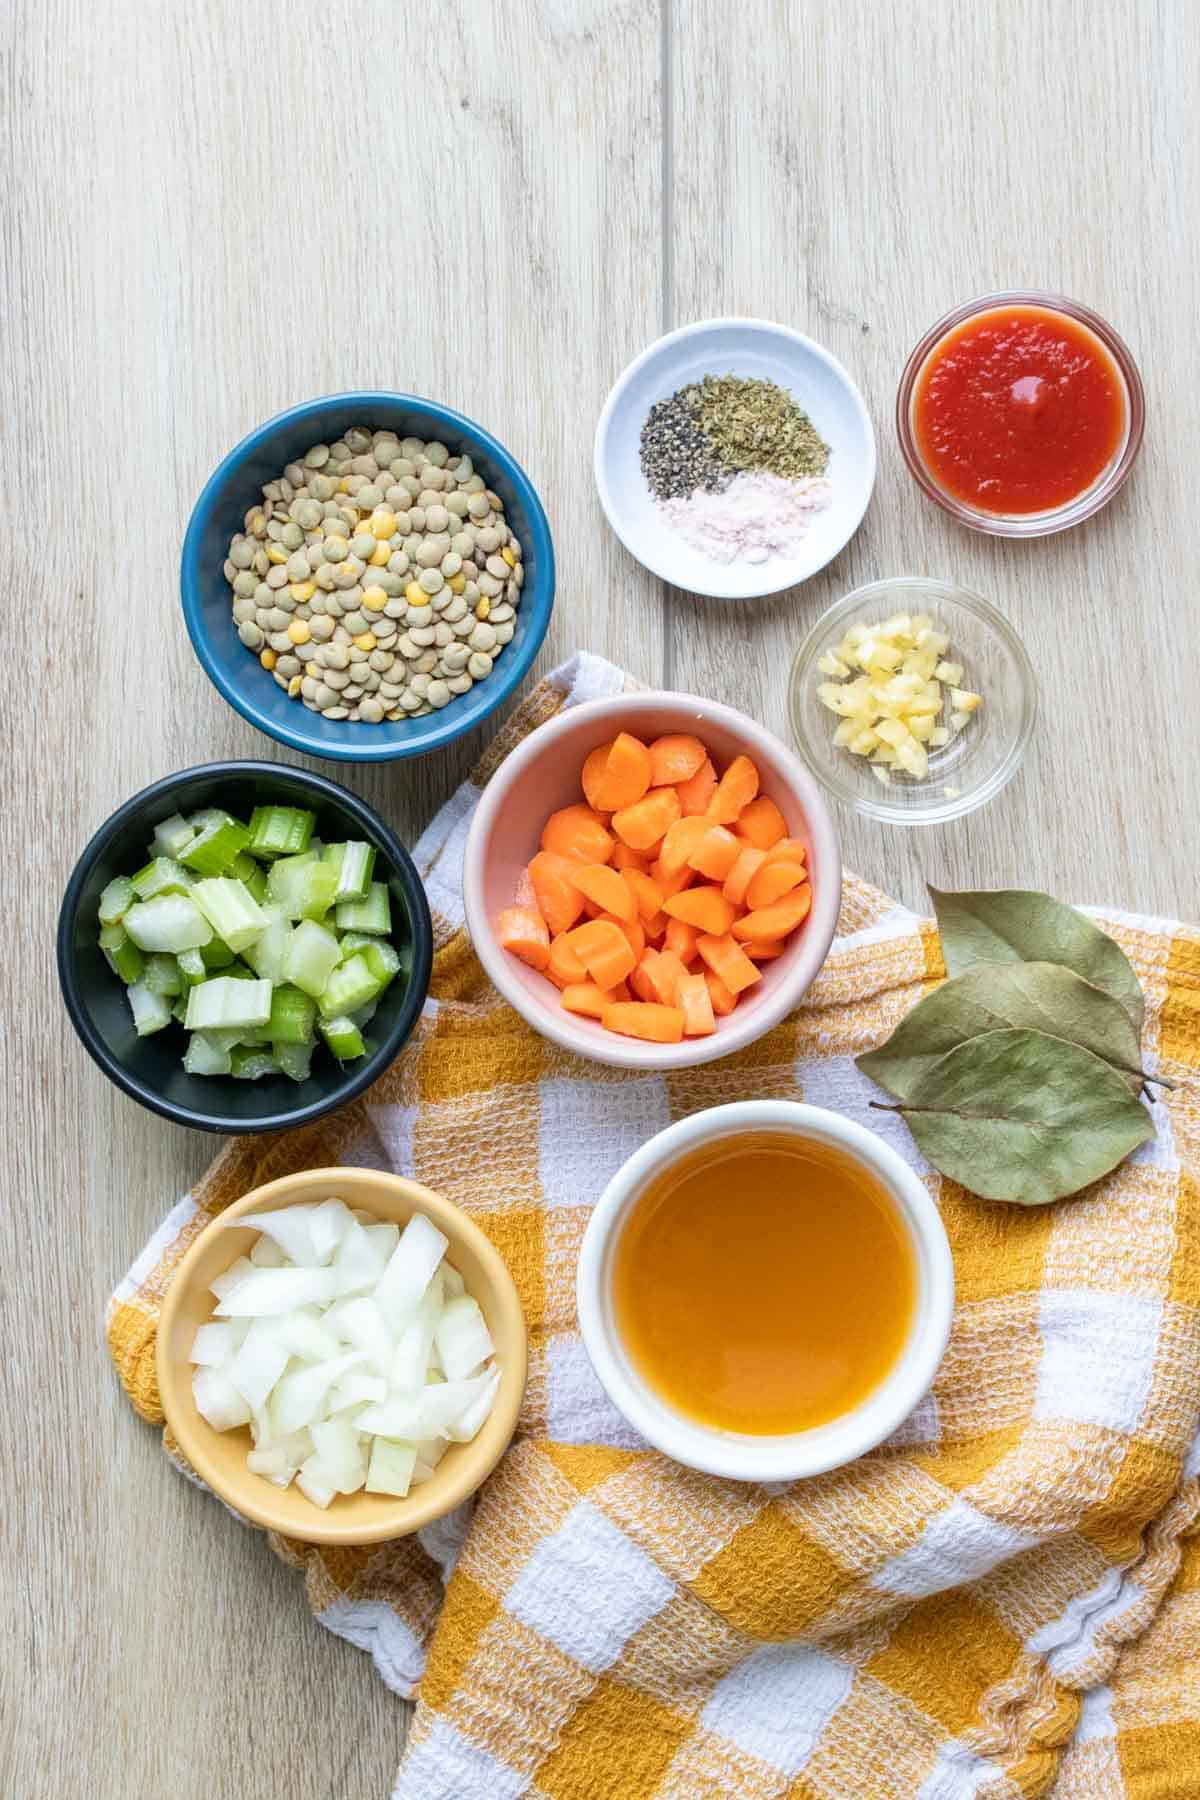 The ingredients needed for a veggie lentil soup in bowls on a yellow and white towel